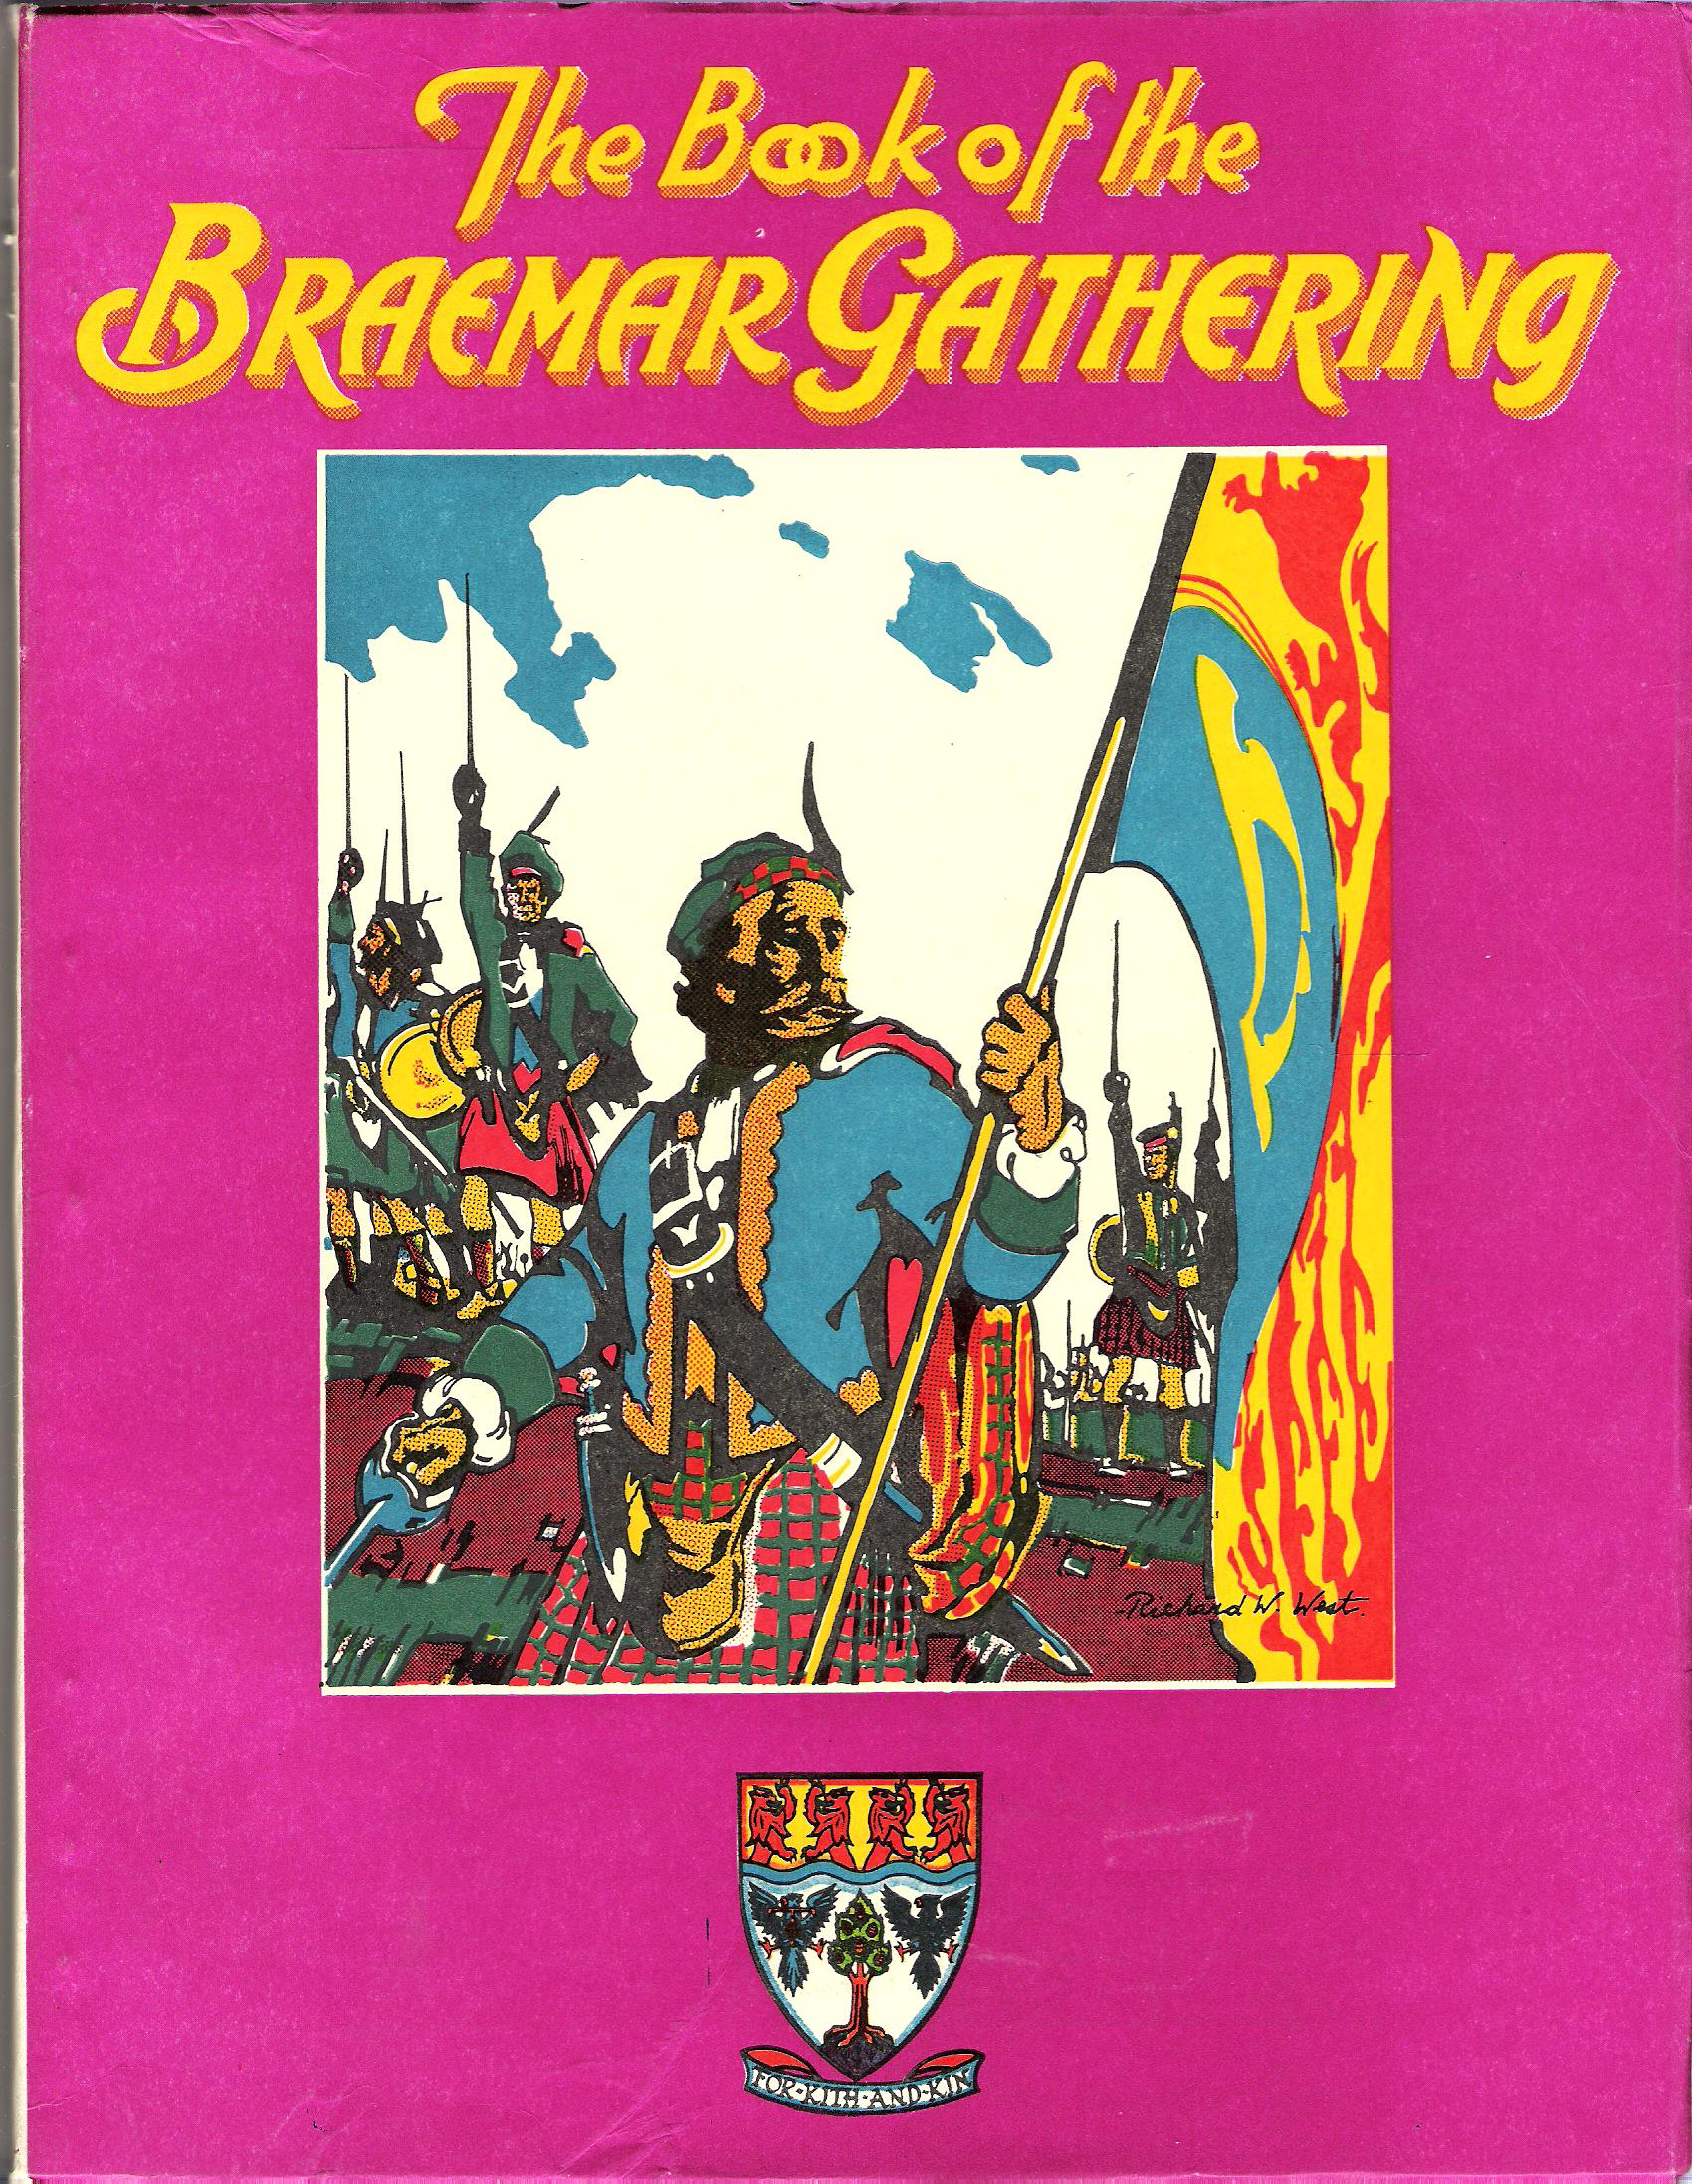 Image for The Book of the Braemar Gathering, 1976.